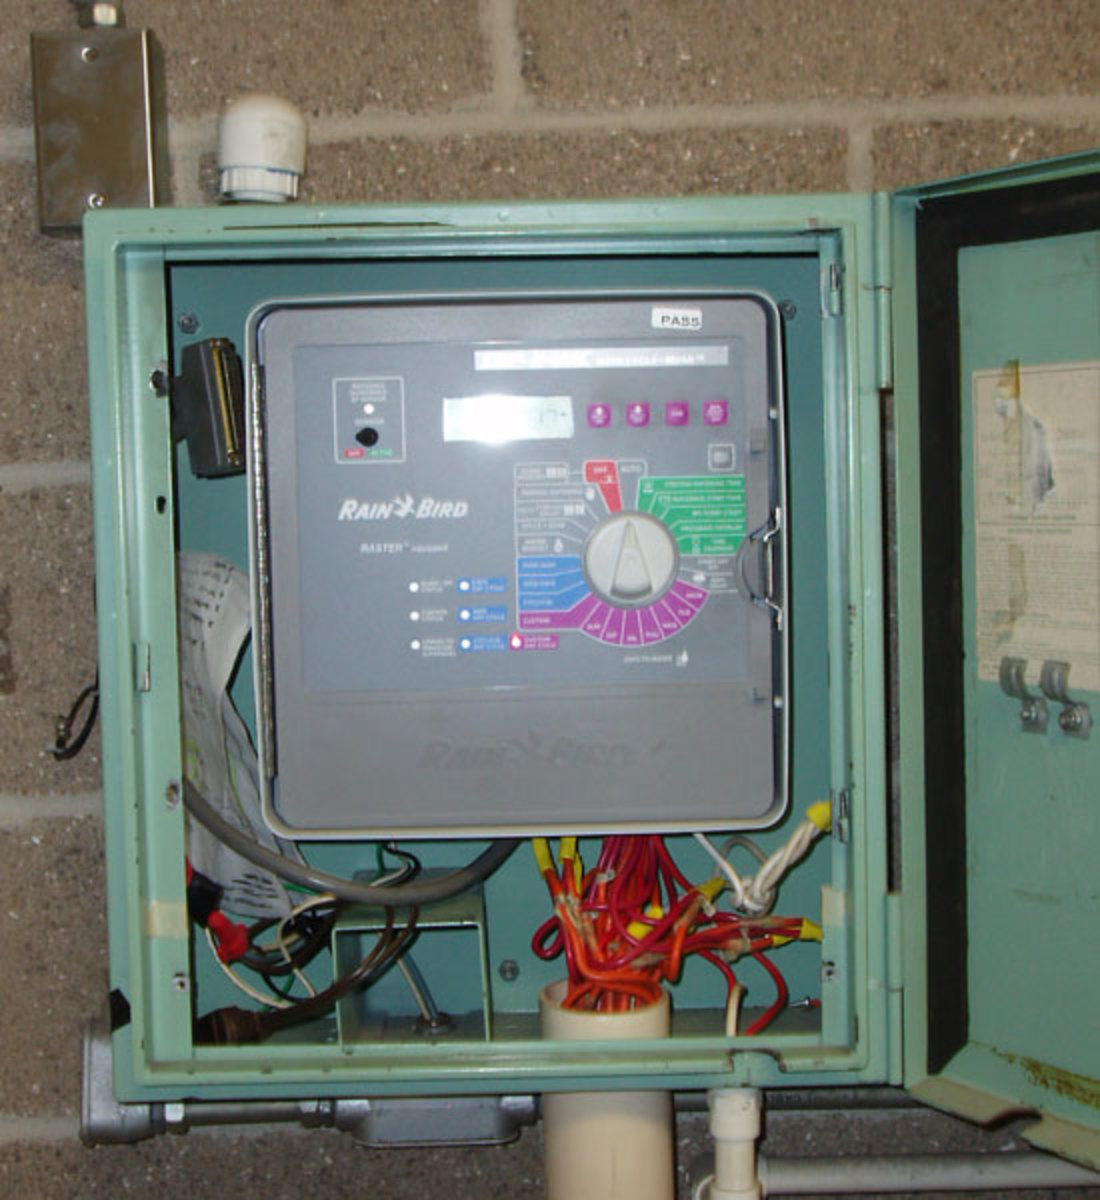 Home irrigation controllers look similar to this school one, but are a little smaller.